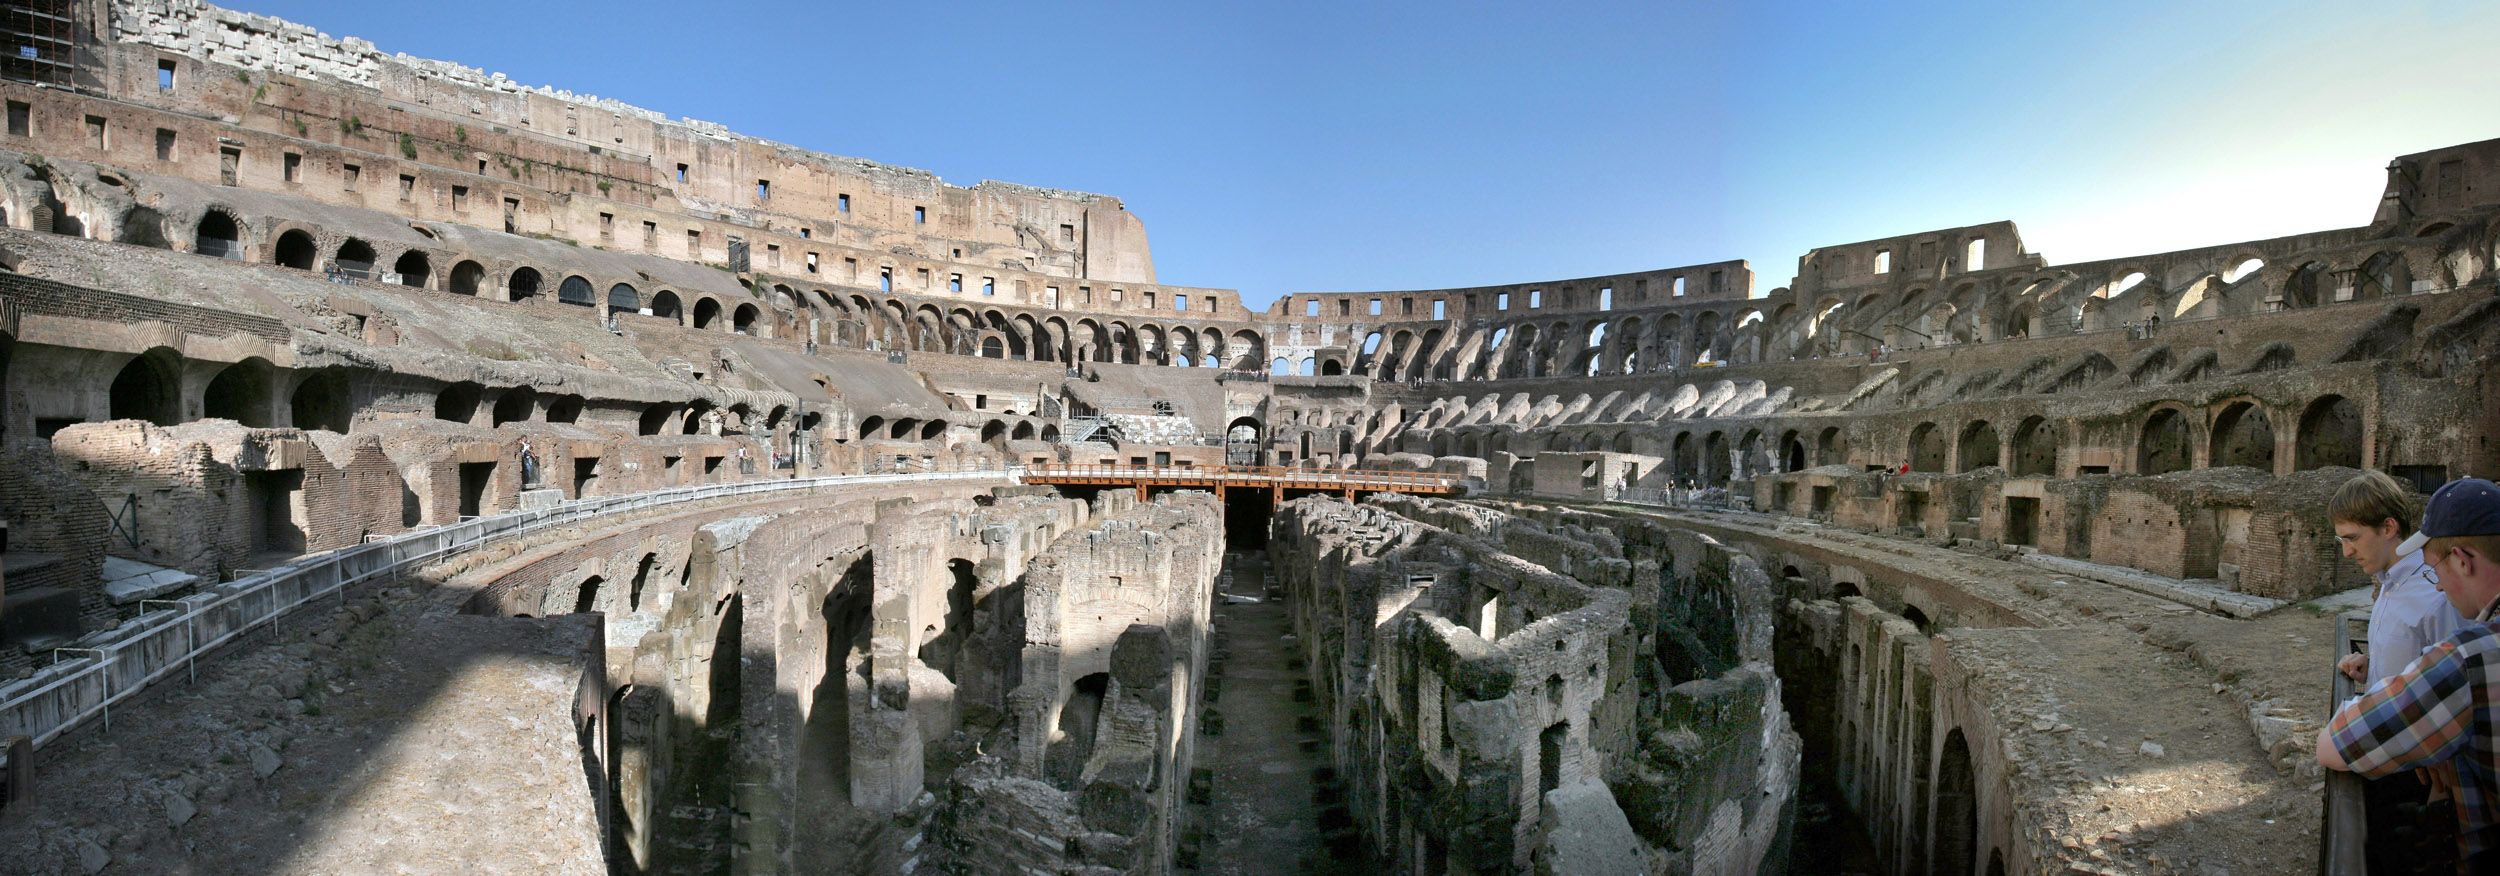 Italie - Italy - Rome - Colosseum